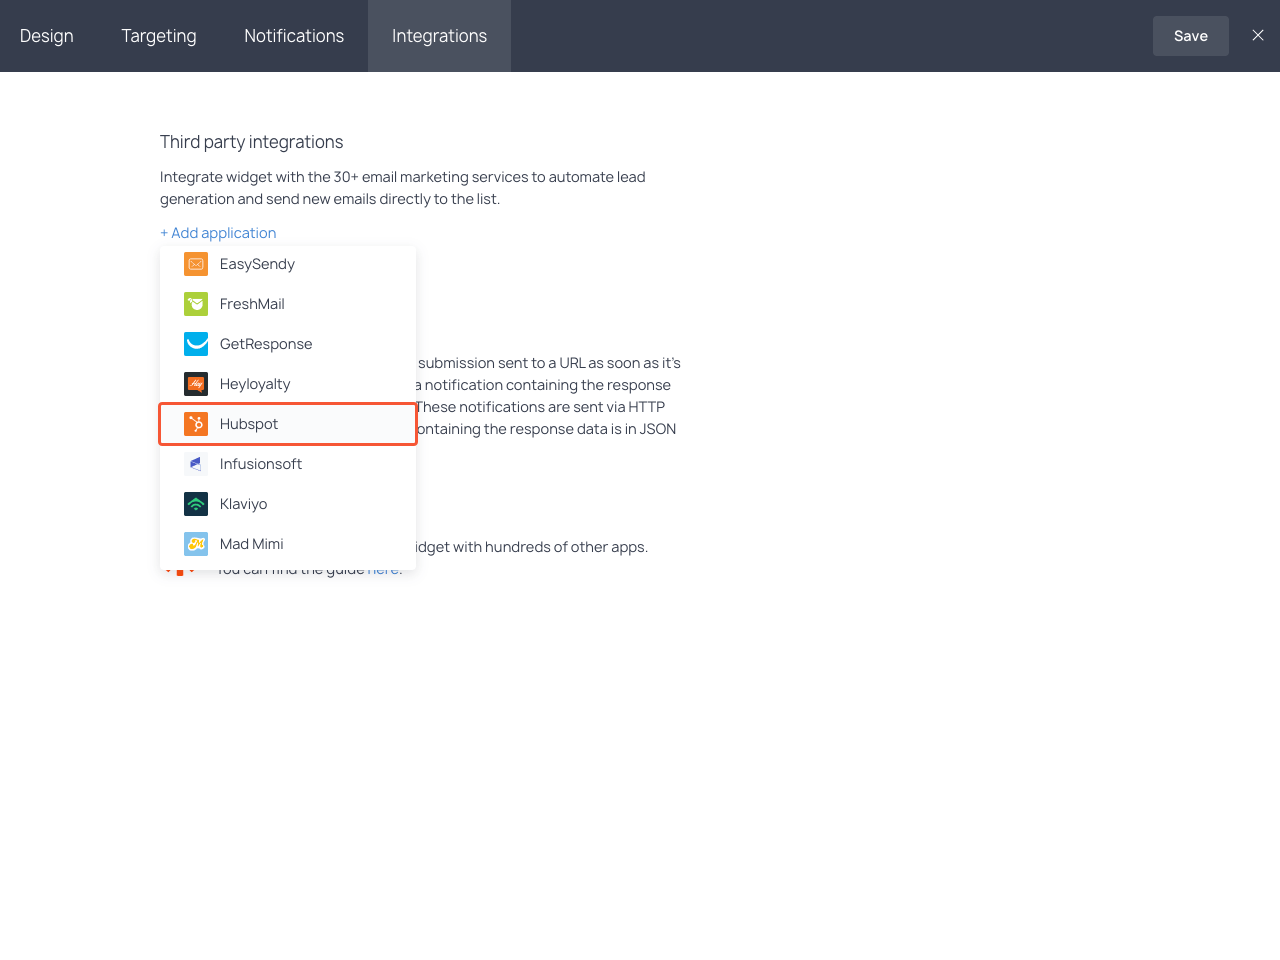 Integrations section with the highlighted Hubspot item in the dropdown list